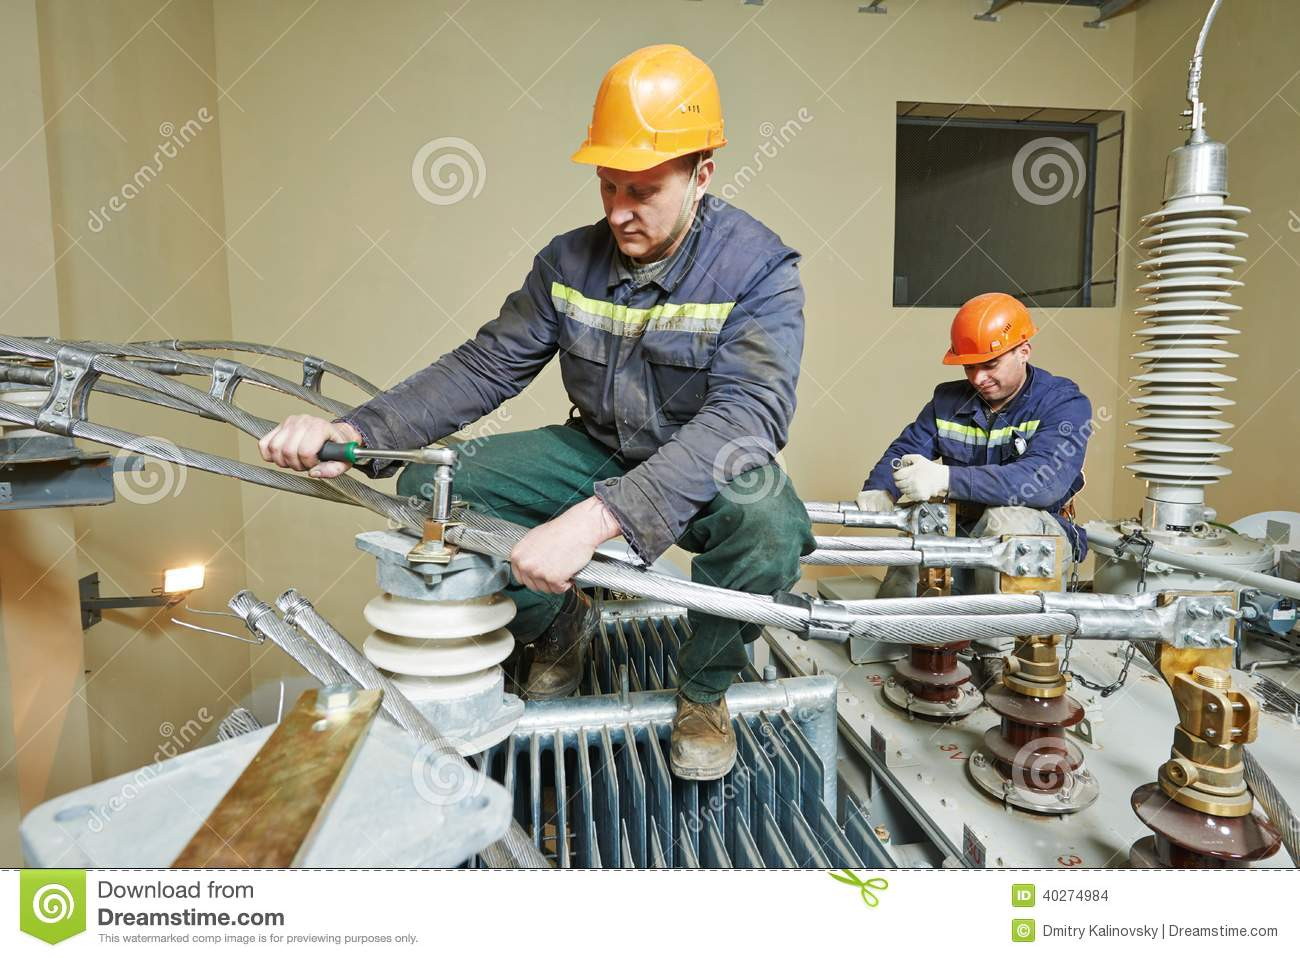 Download Power Electrician Lineman At Work Stock Photo - Image of huge, line: 40274984